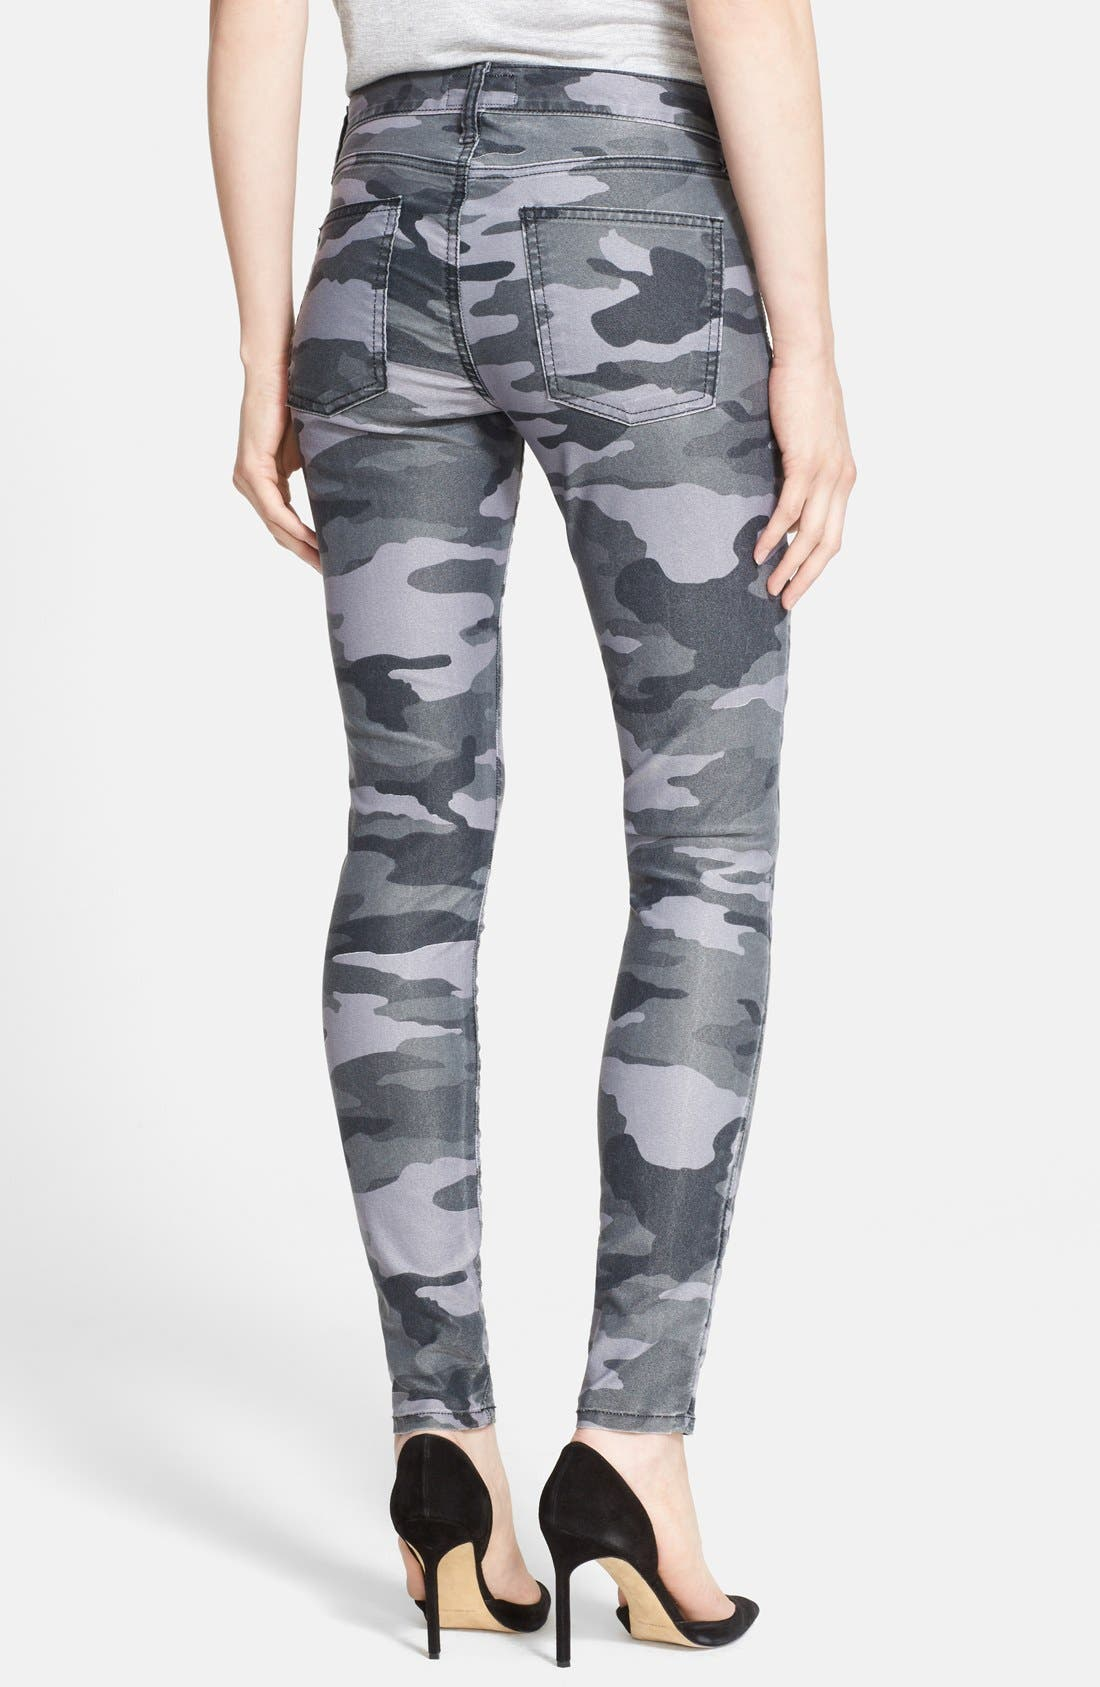 CURRENT/ELLIOTT, 'The Ankle Skinny' Coated Camo Skinny Jeans, Alternate thumbnail 2, color, 009